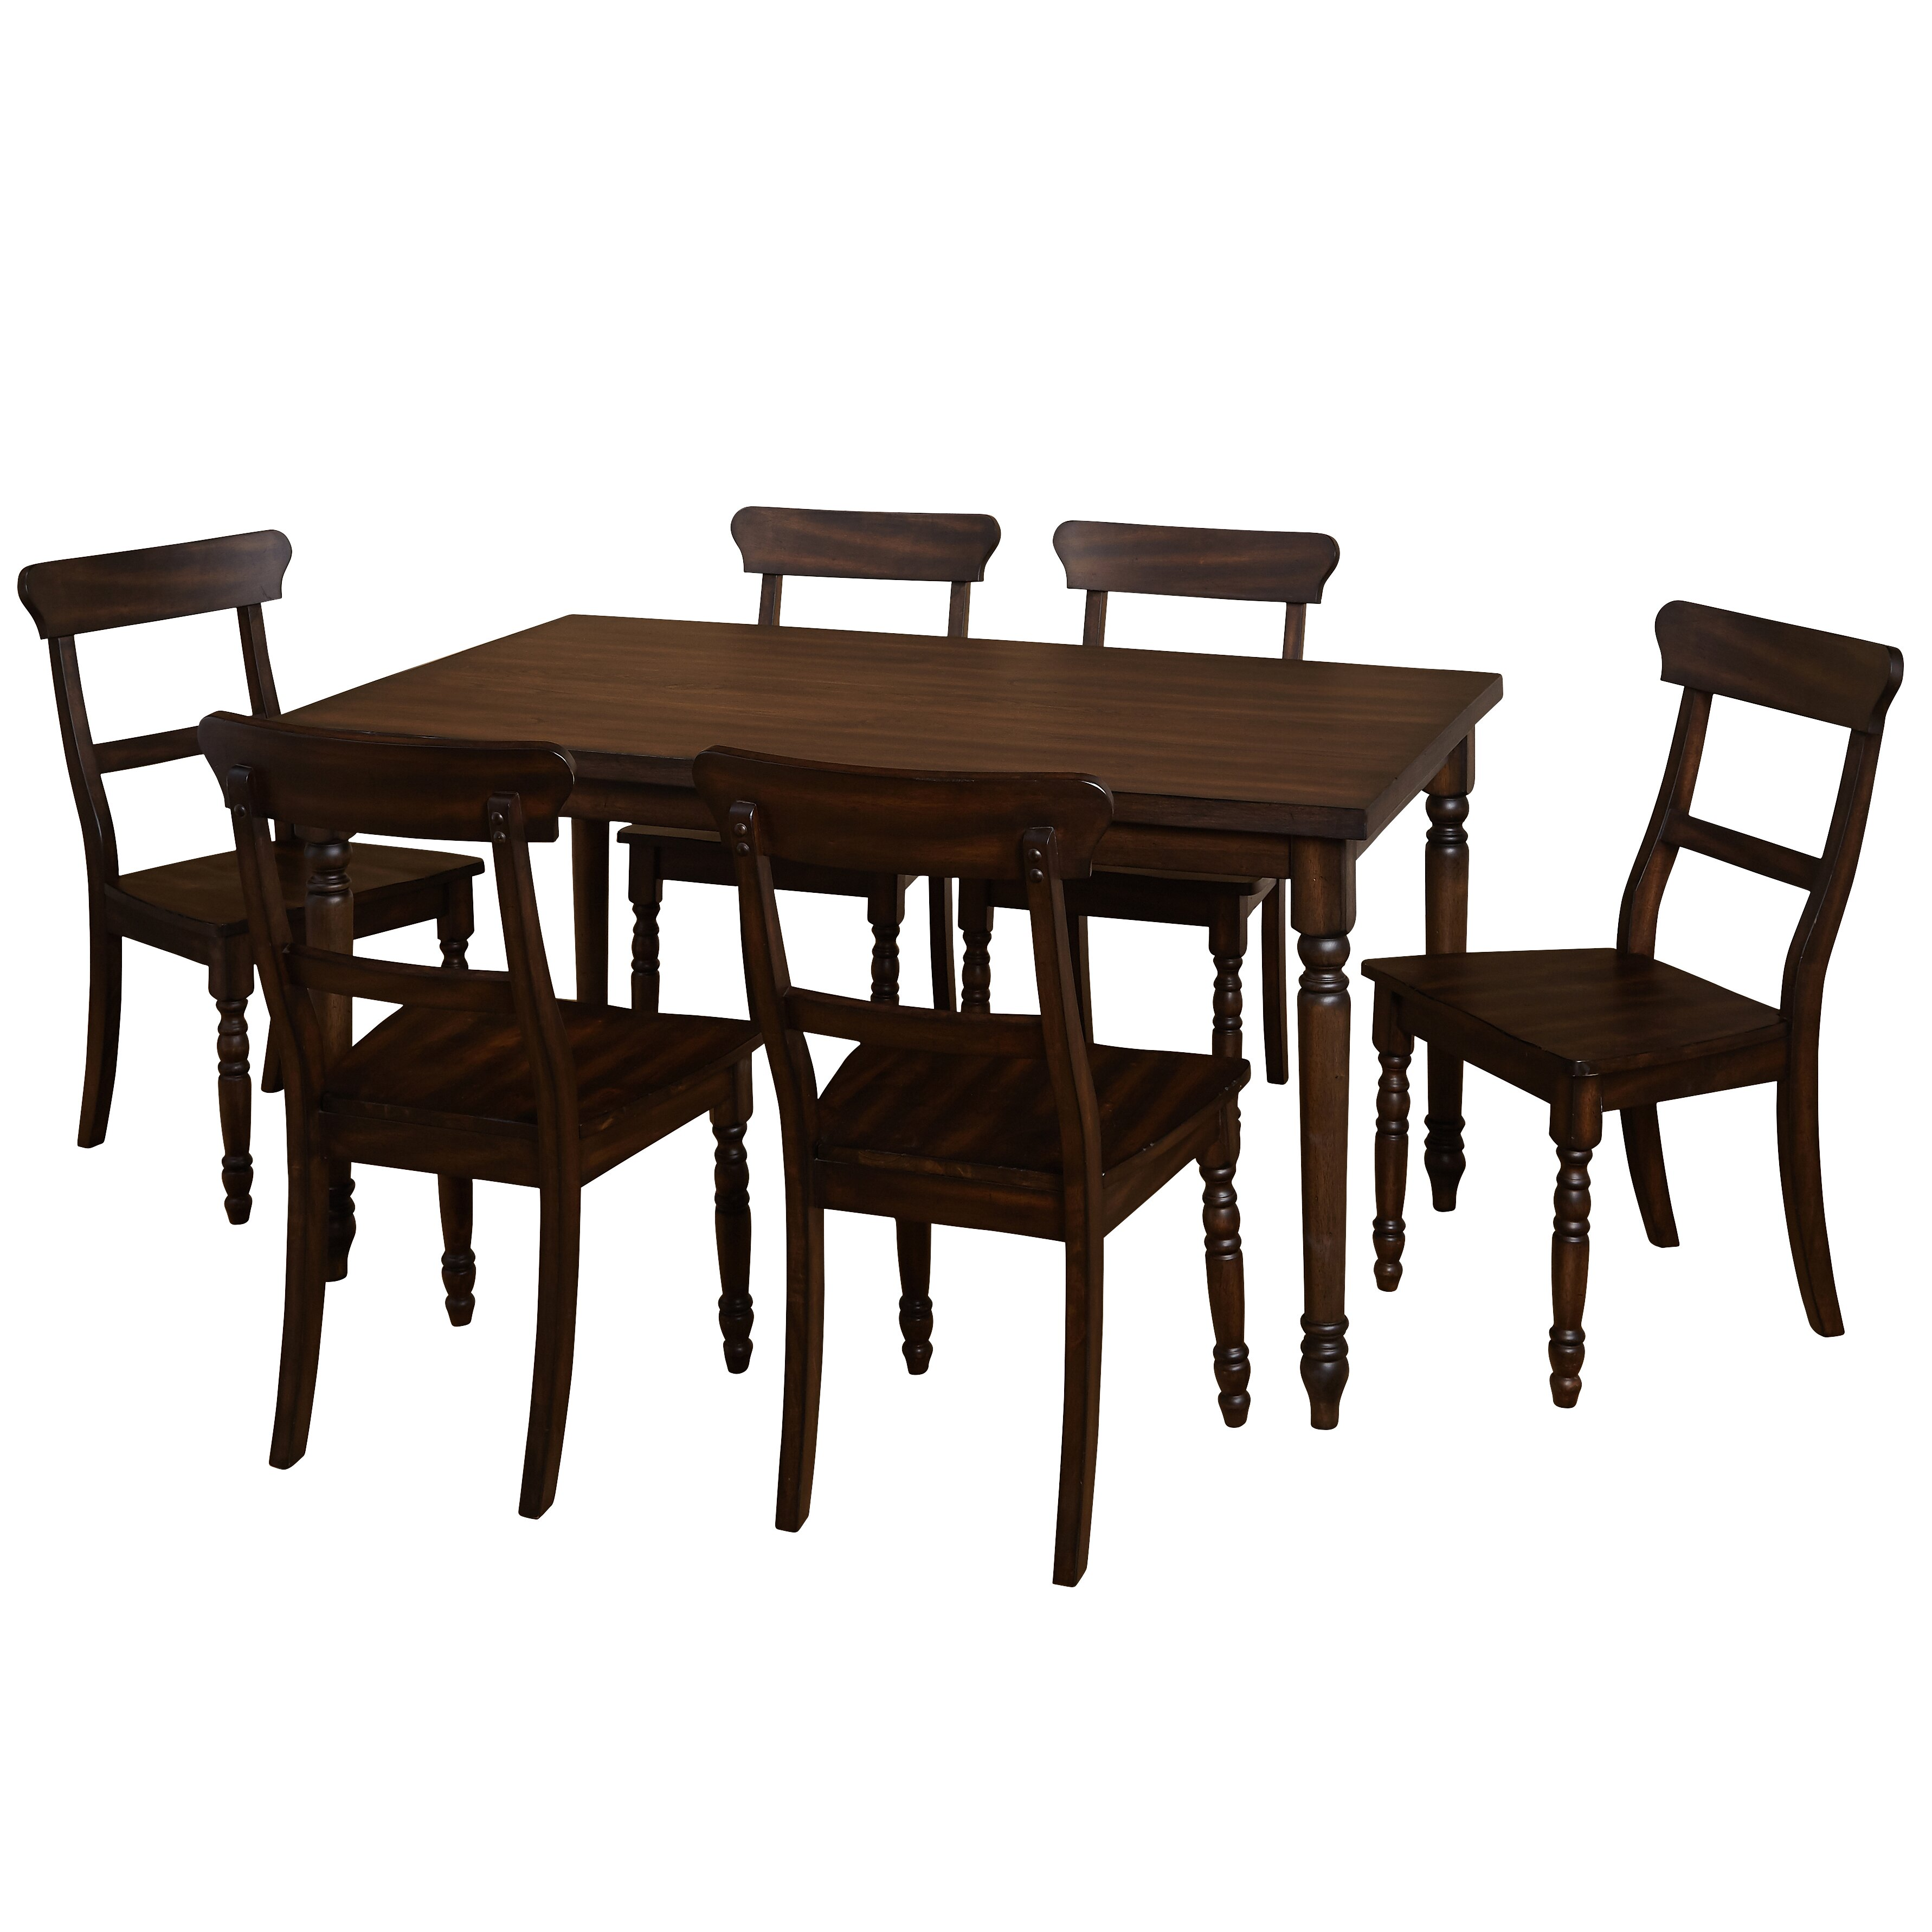 Tms muses 7 piece dining set wayfair for 7 piece dining set